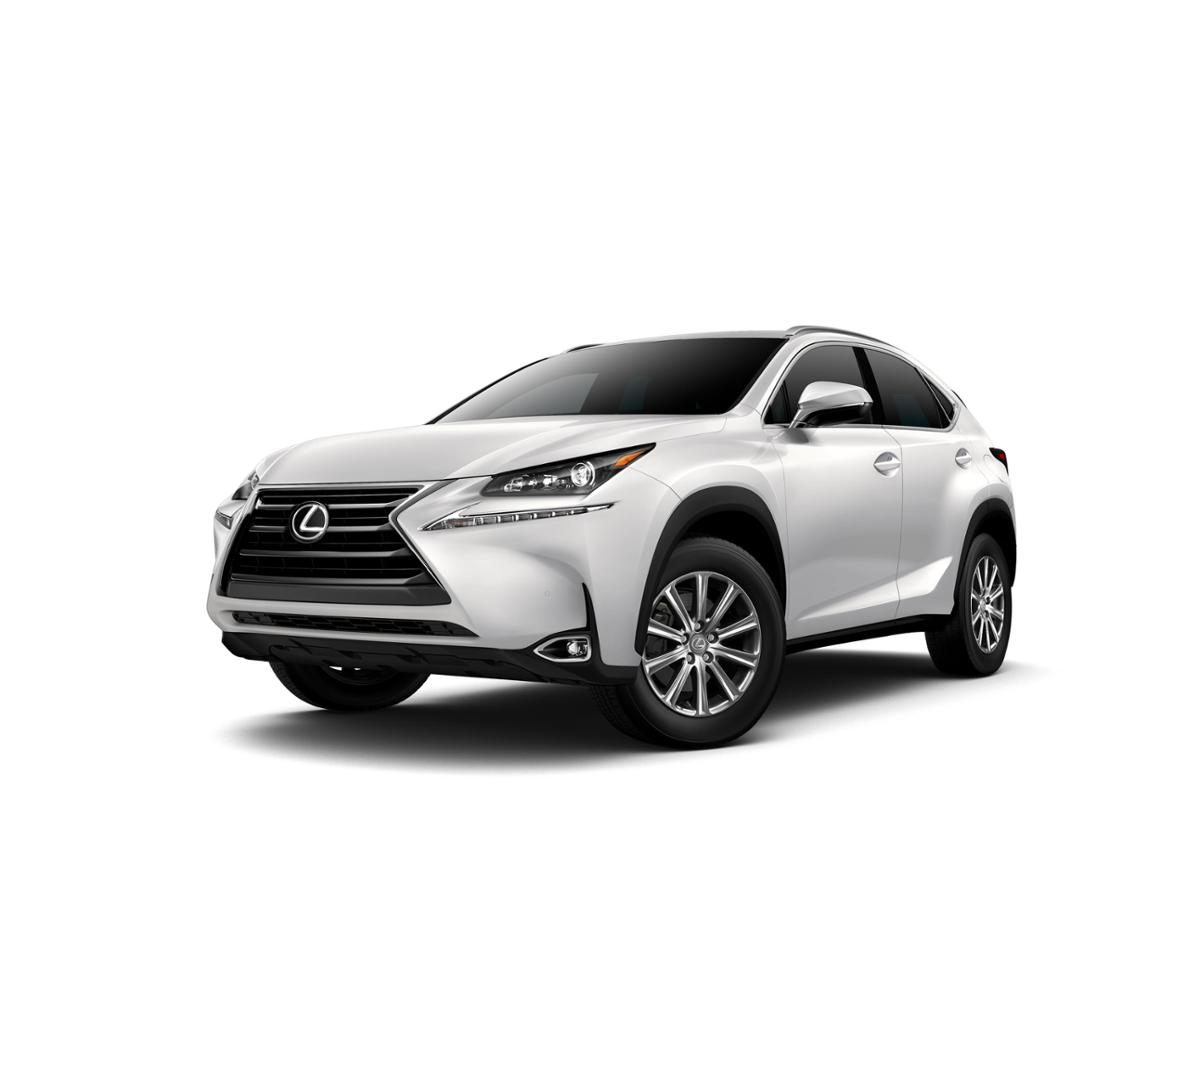 2017 Lexus NX Turbo Vehicle Photo in Las Vegas, NV 89146